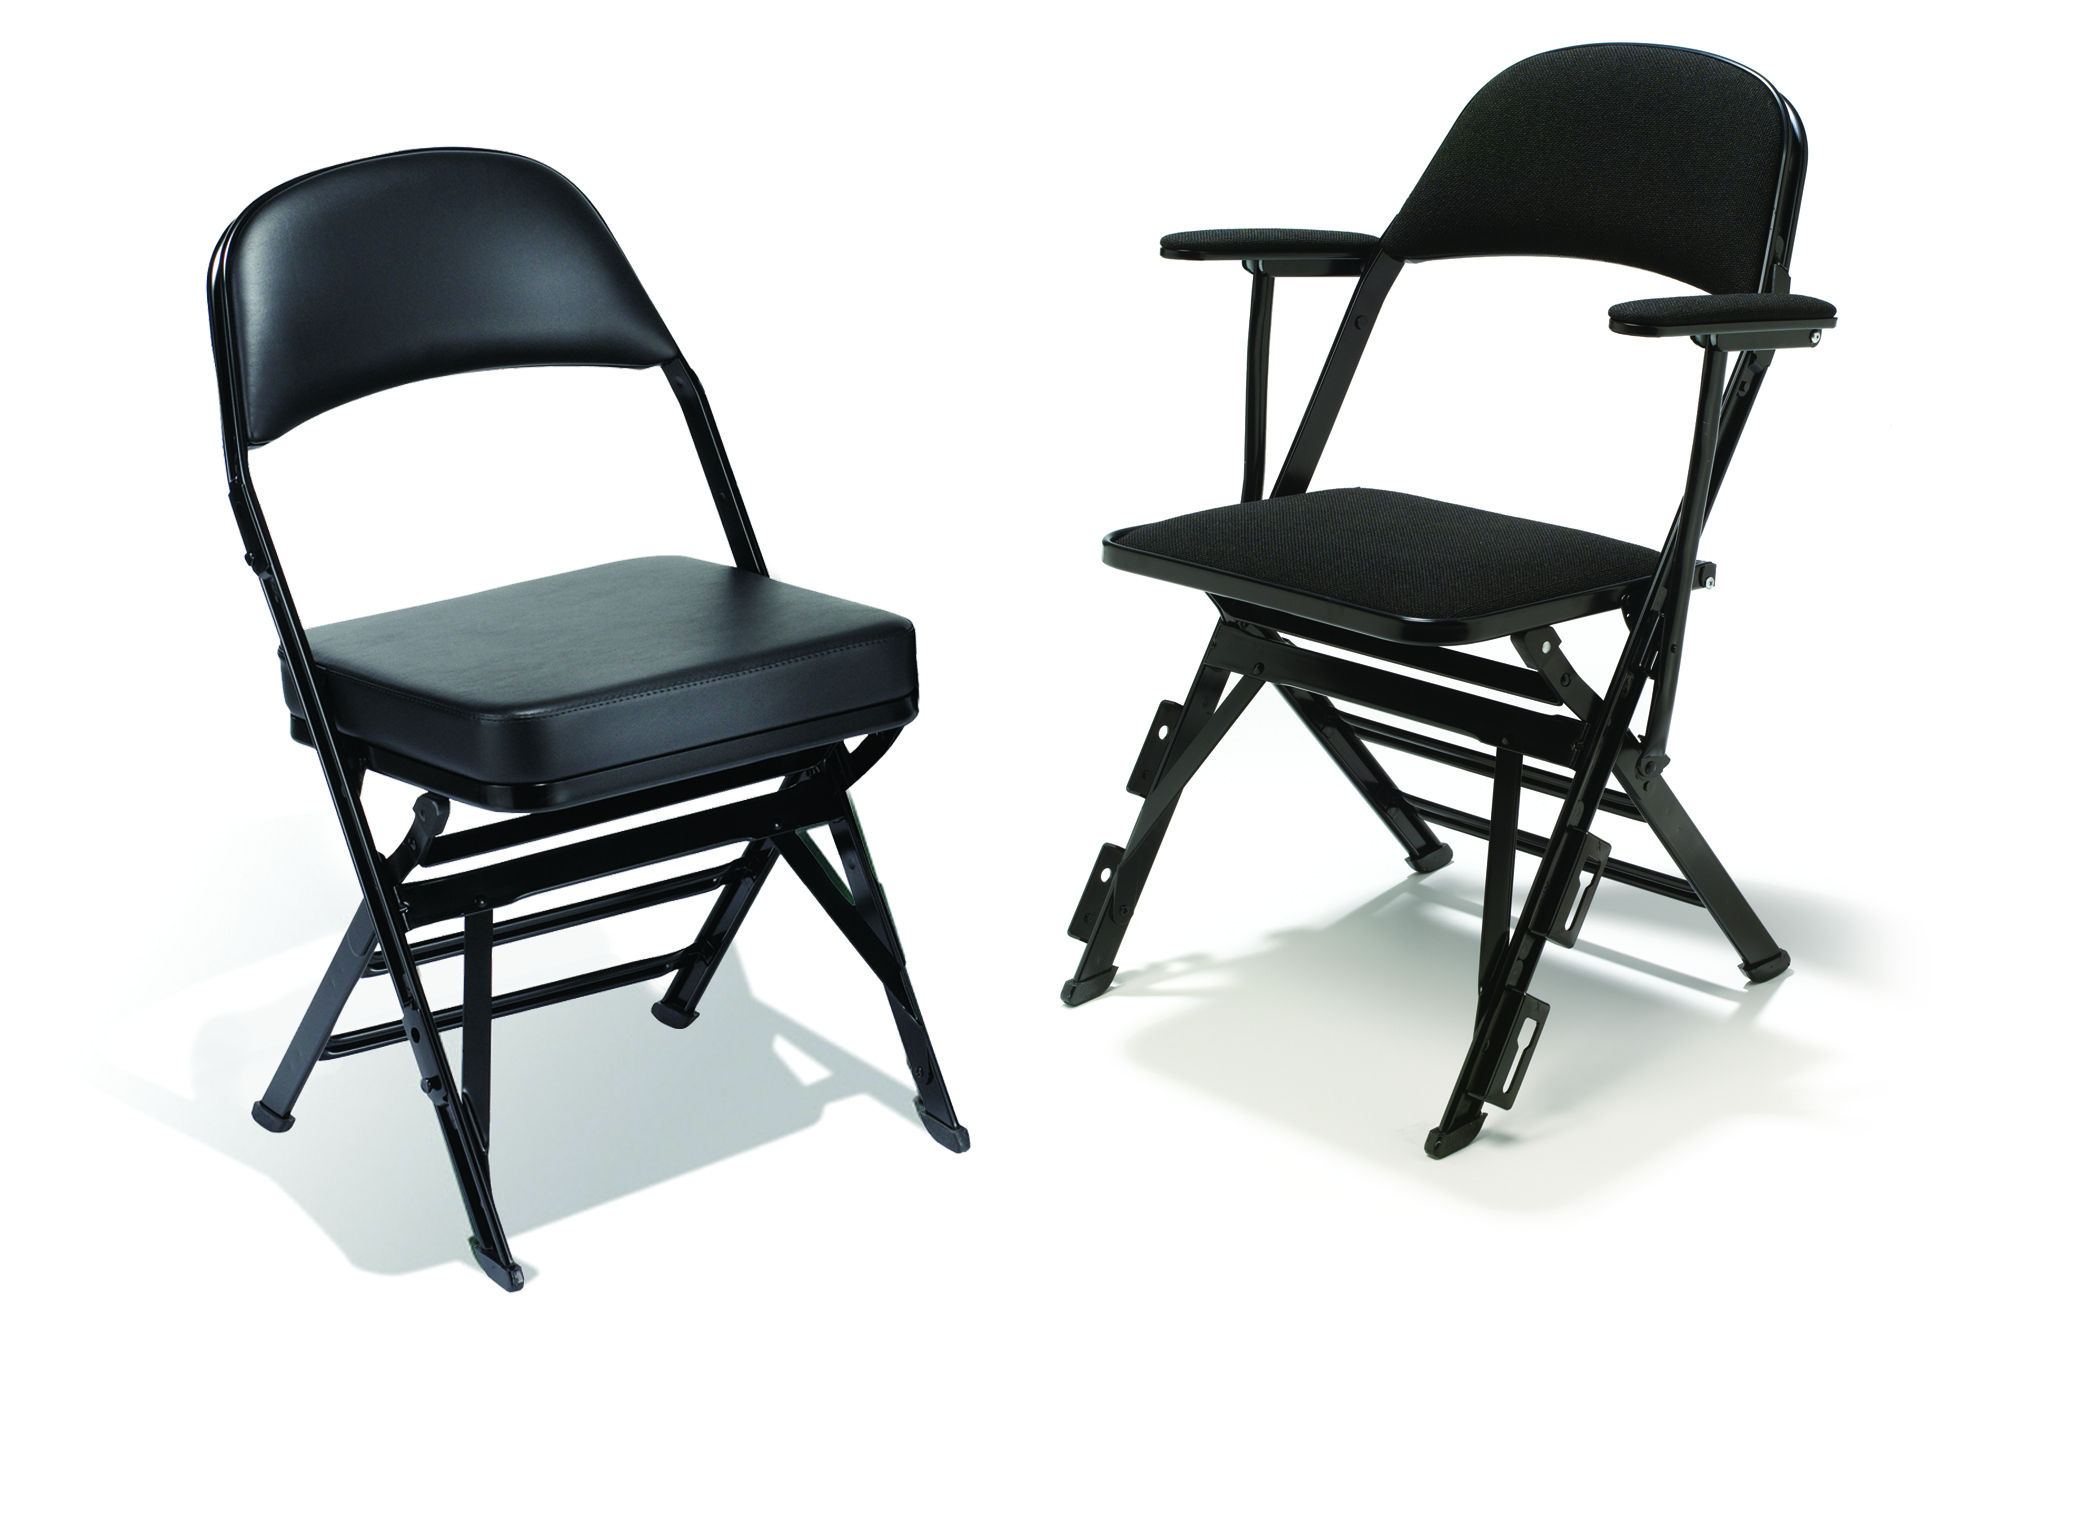 Wenger Chairs High Density Portable Audience Chairs By Clarin Wenger